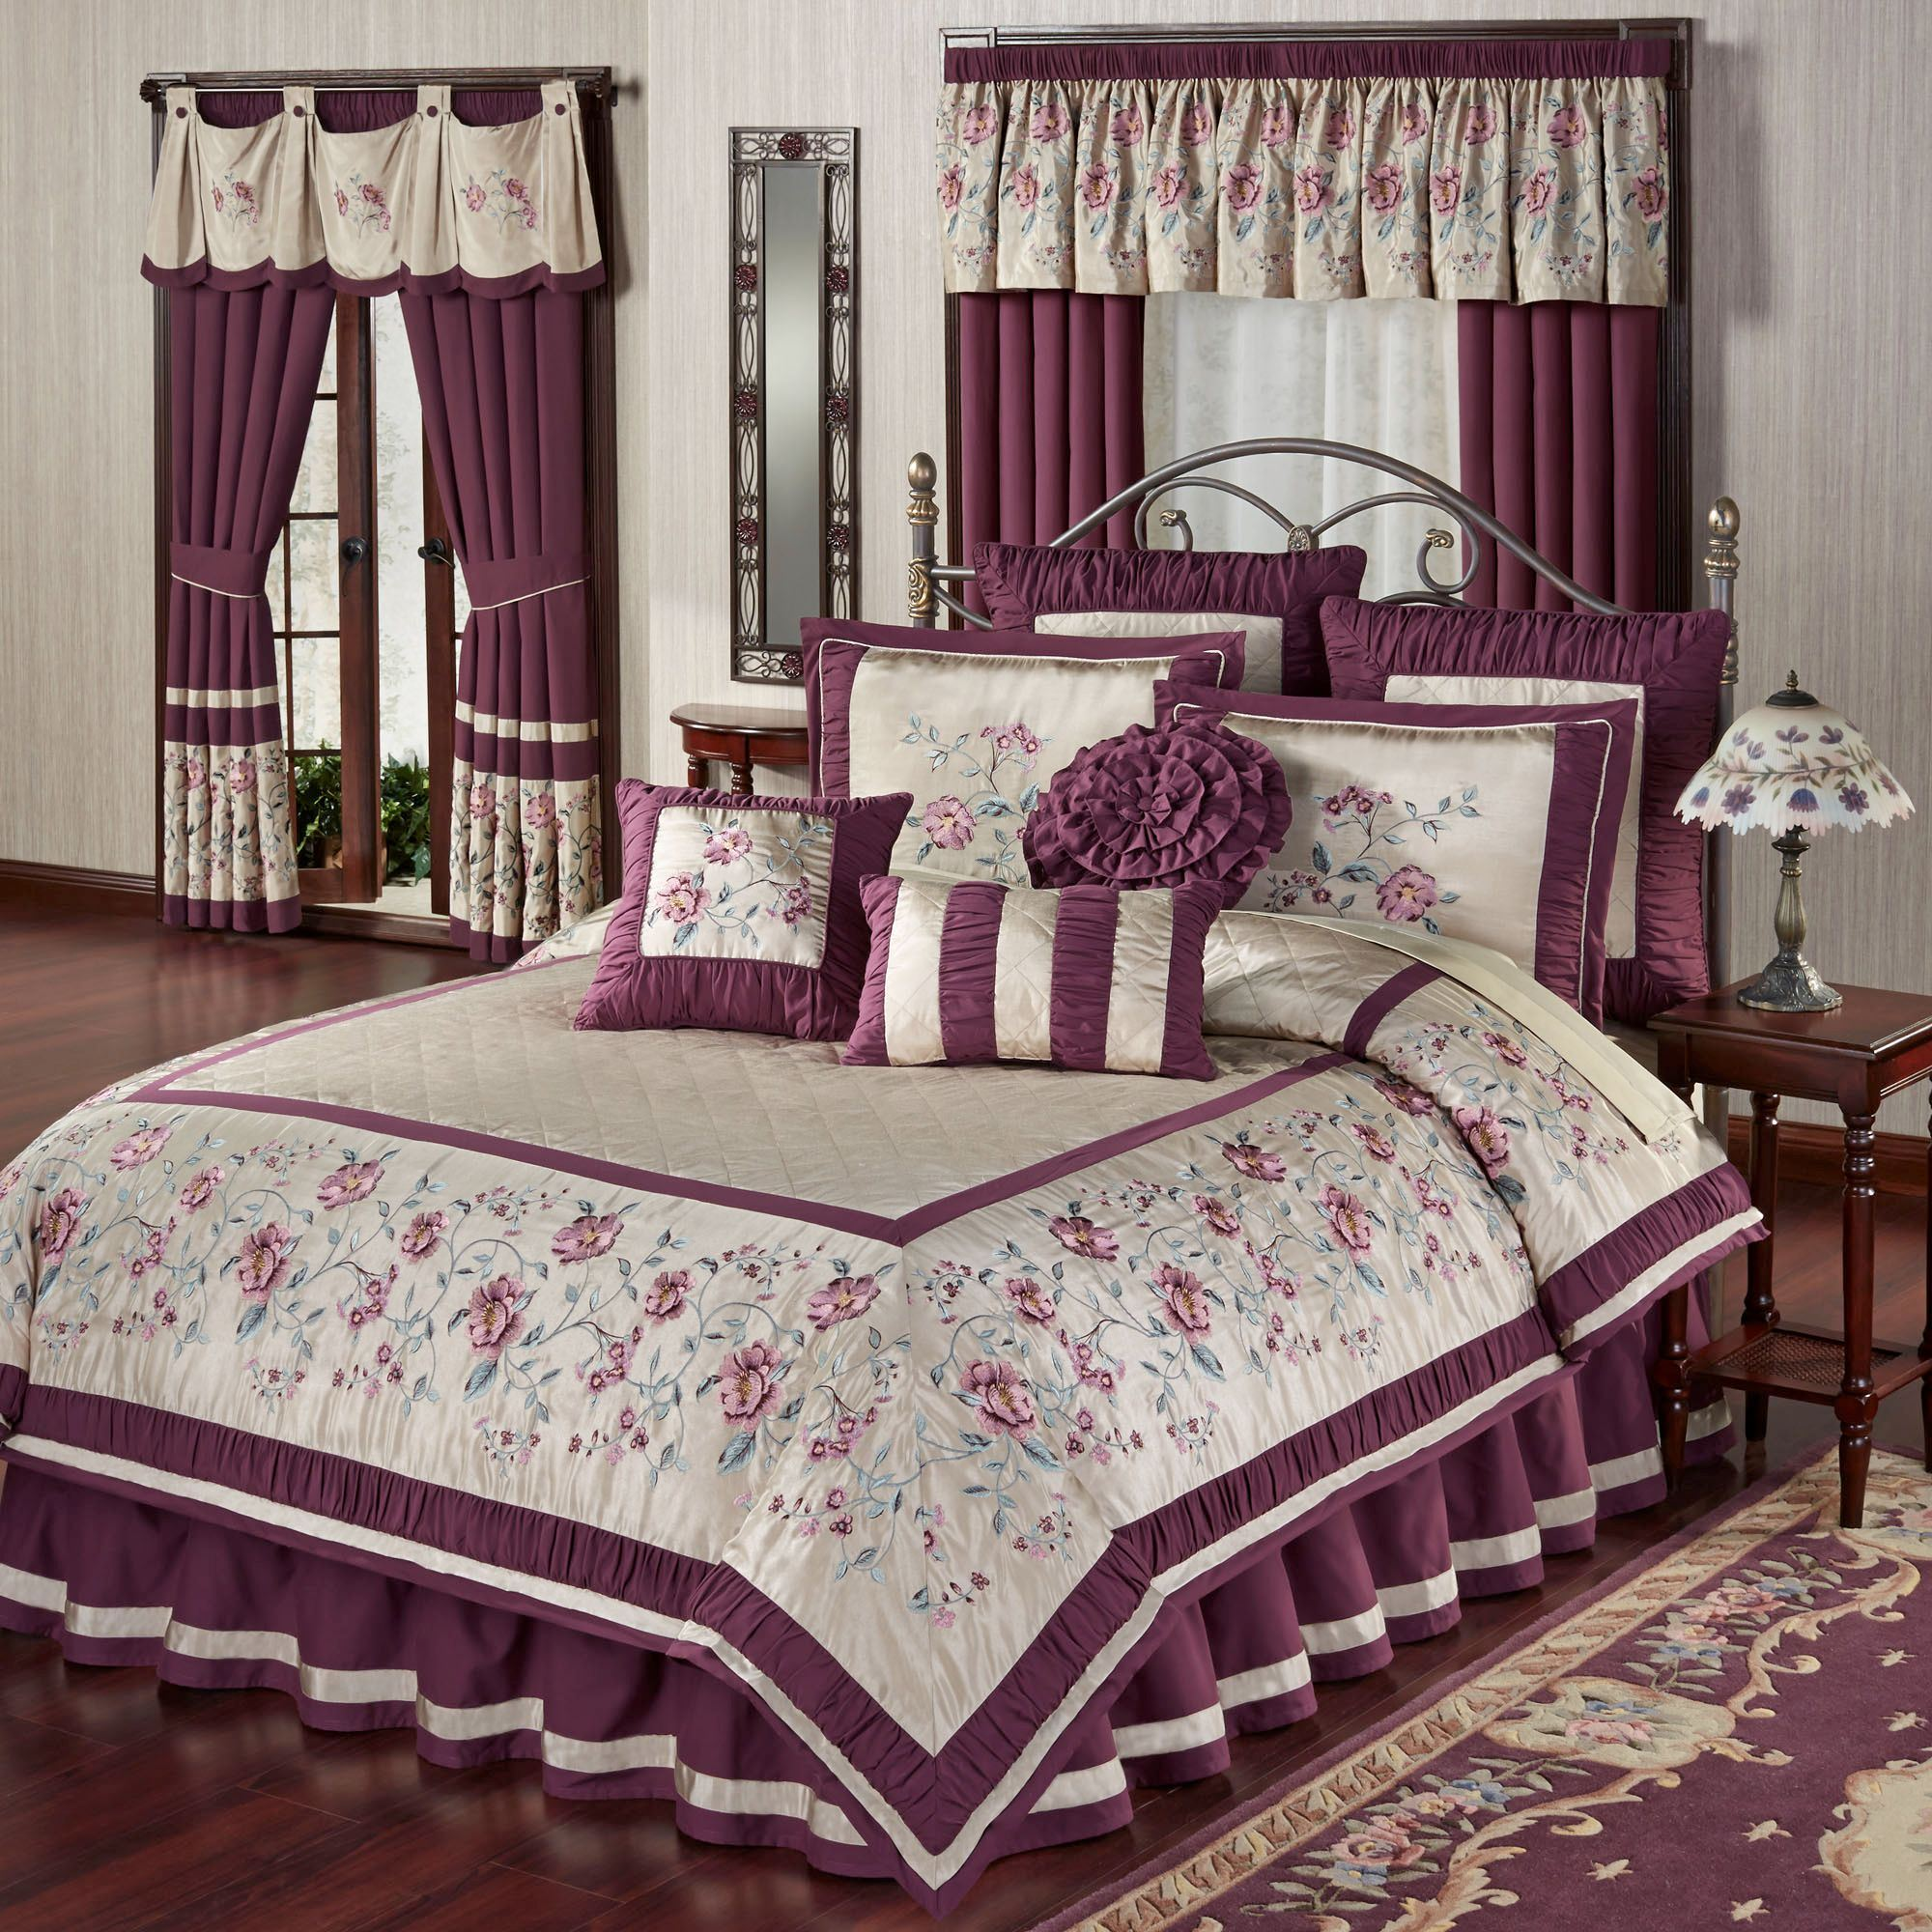 Duvet And Comforter Sets Mystic Garden Floral Comforter Bedding